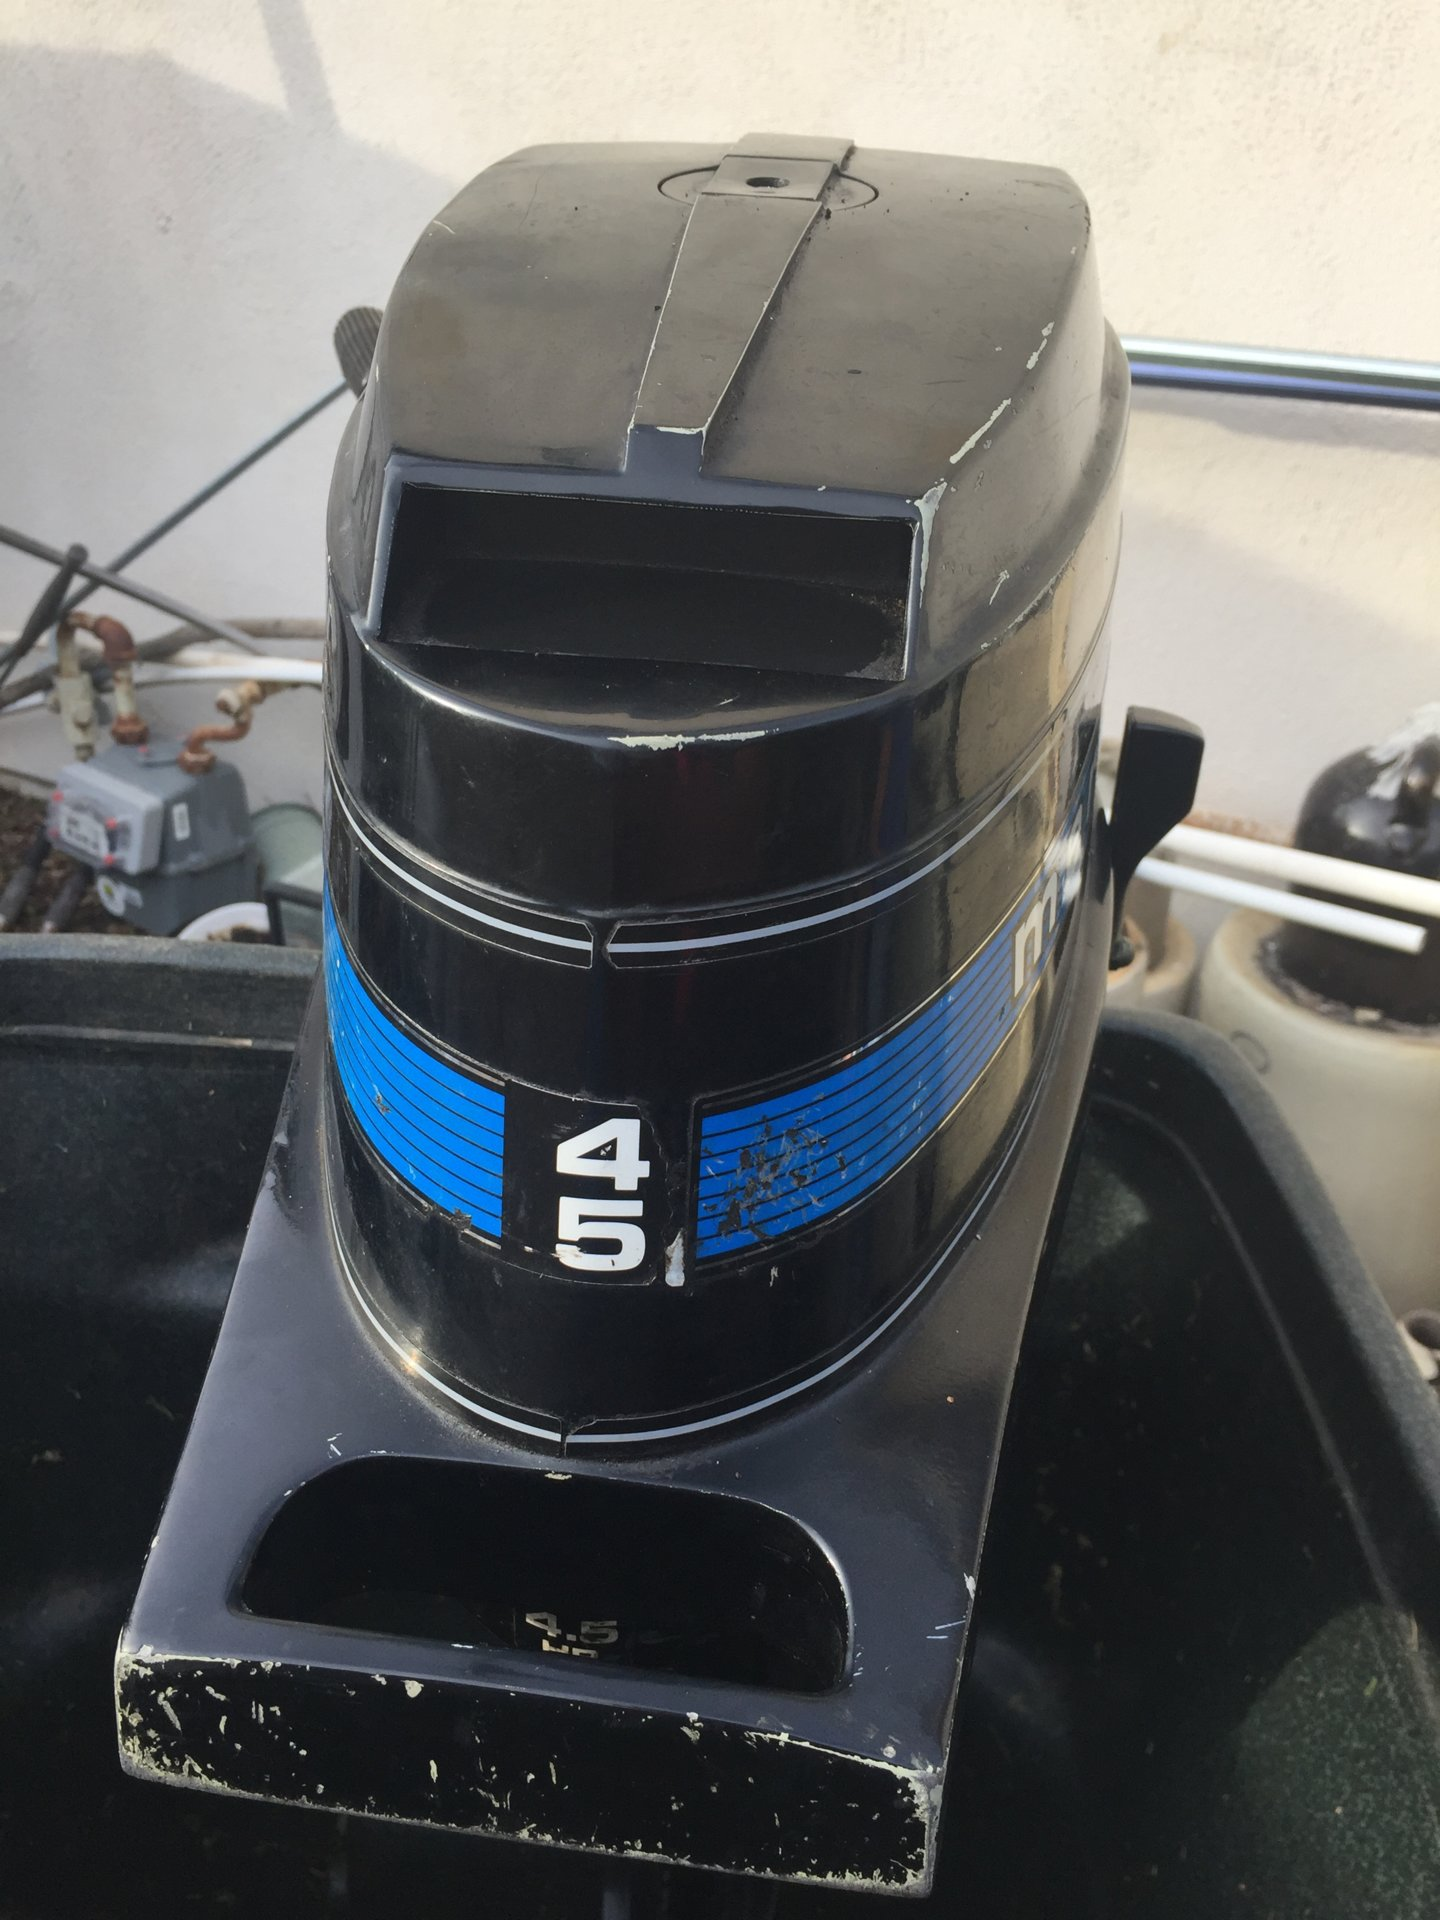 F Fdde Be Bb Eff D C Cd on Mercury 50 Hp Outboard